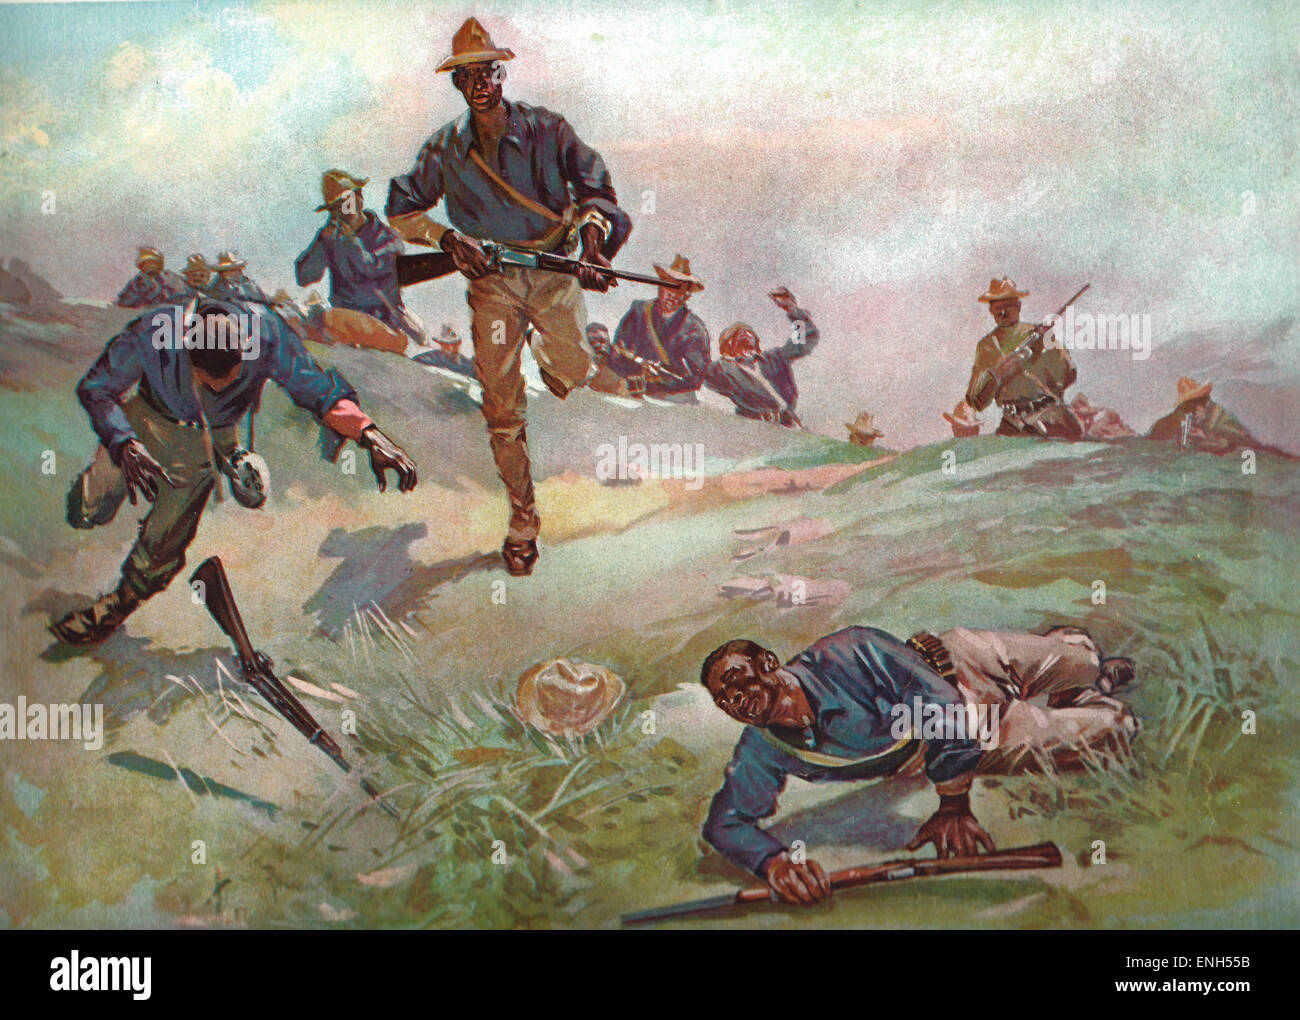 Troop C, Ninth U.S Cavalry Captain Taylor Leading the Charge at San Juan during the Spanish American War, 1898 - Stock Image